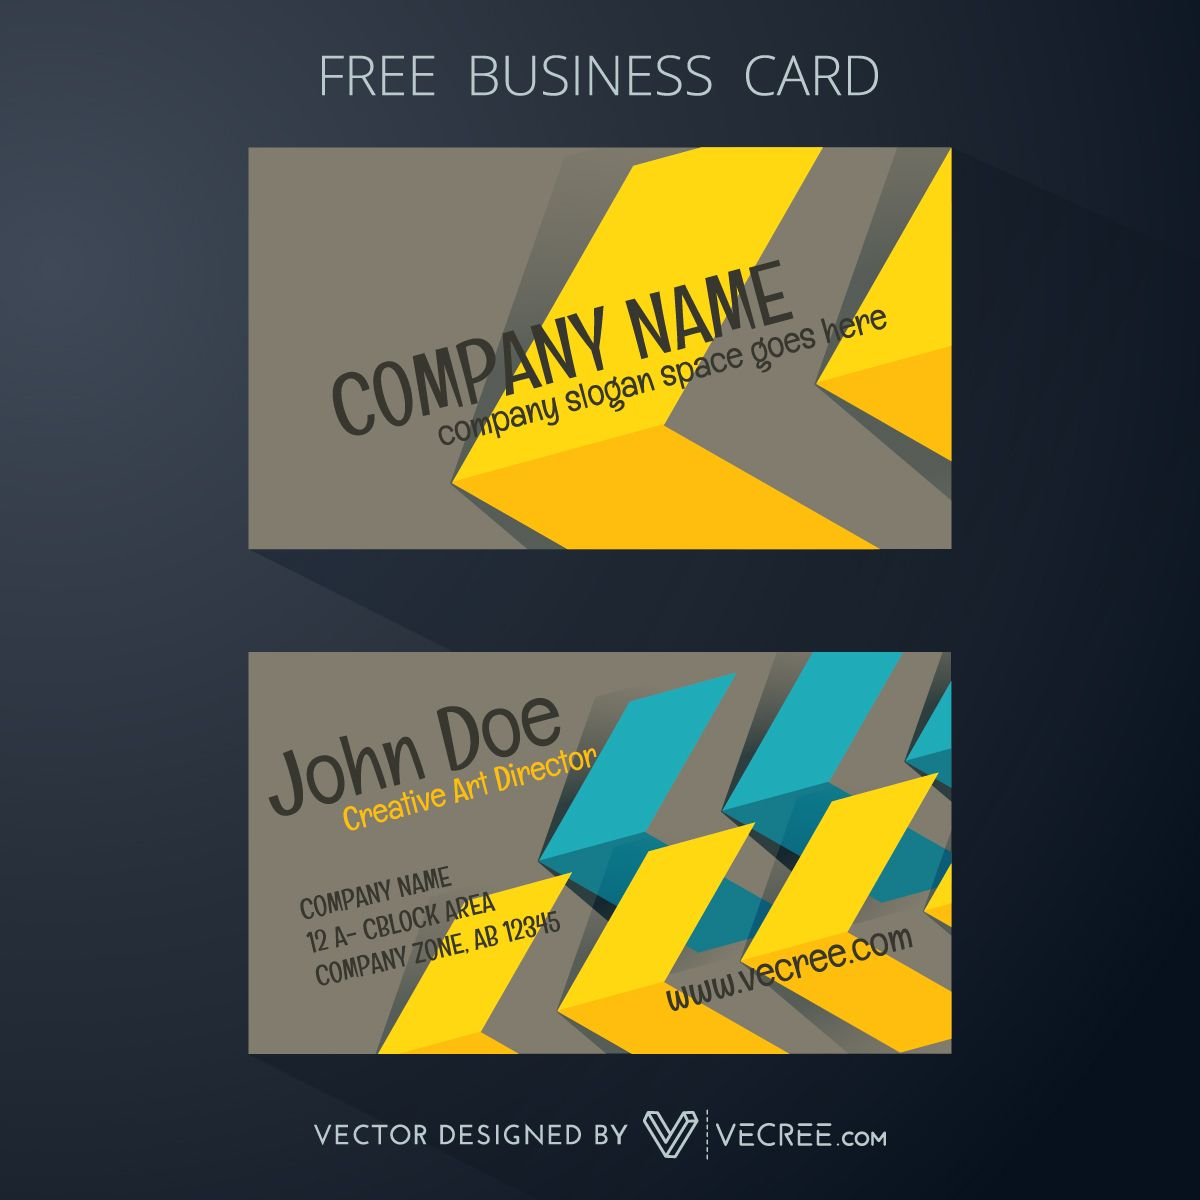 Business Card Design With Arrow Pattern Design Free Vector - https://vecree.com/1609812/business-card-design-with-arrow-pattern-design-free-vector/